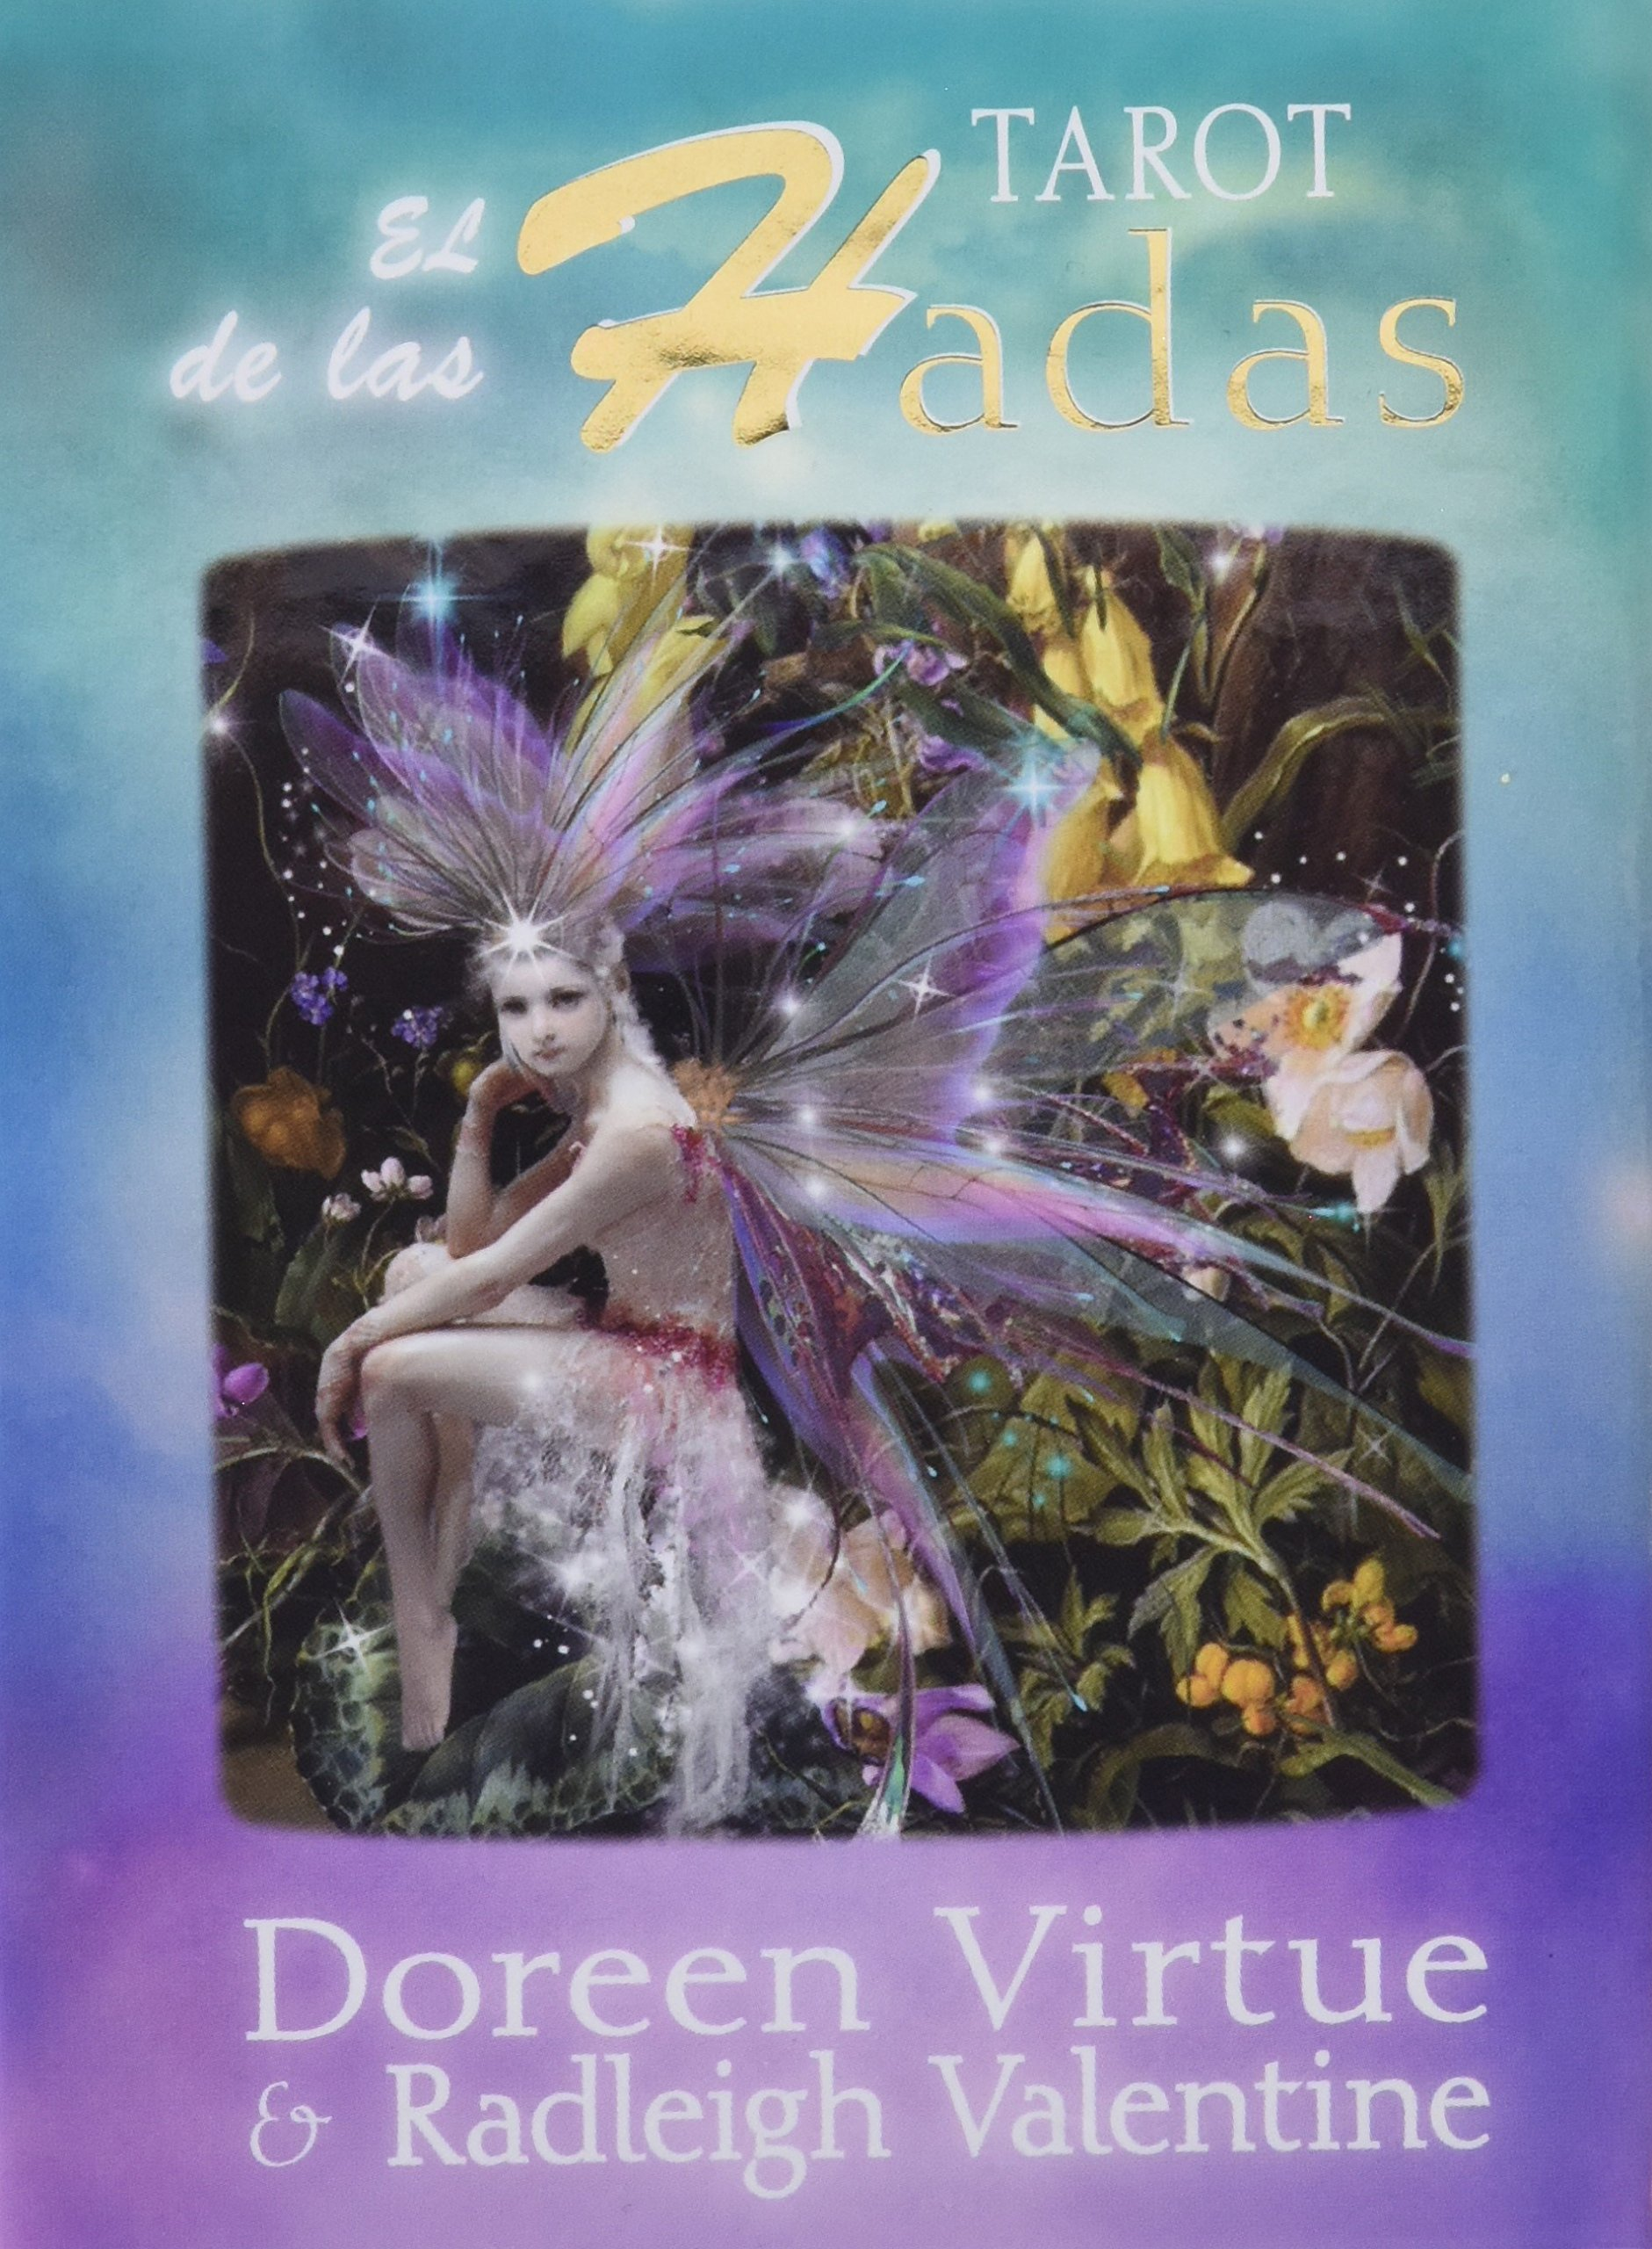 El tarot de las hadas: Amazon.es: Dooren Virtue: Libros